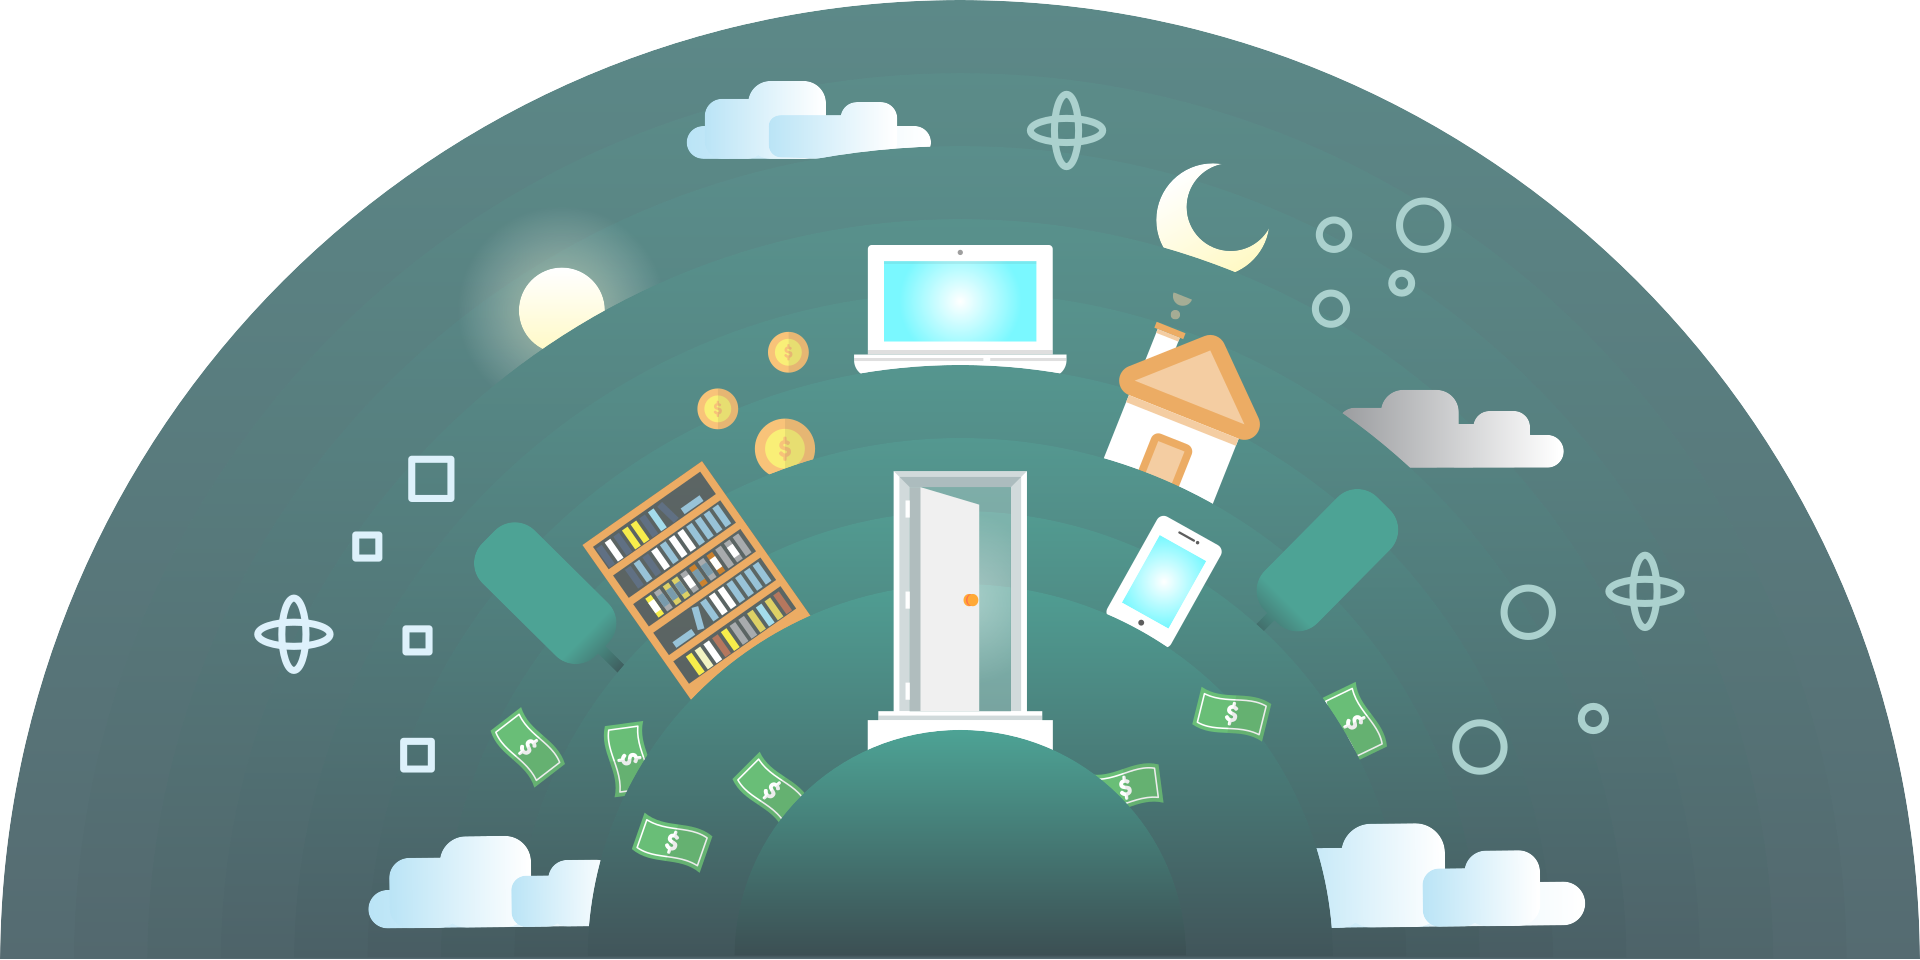 graphic of door house money bookshelf and more icons